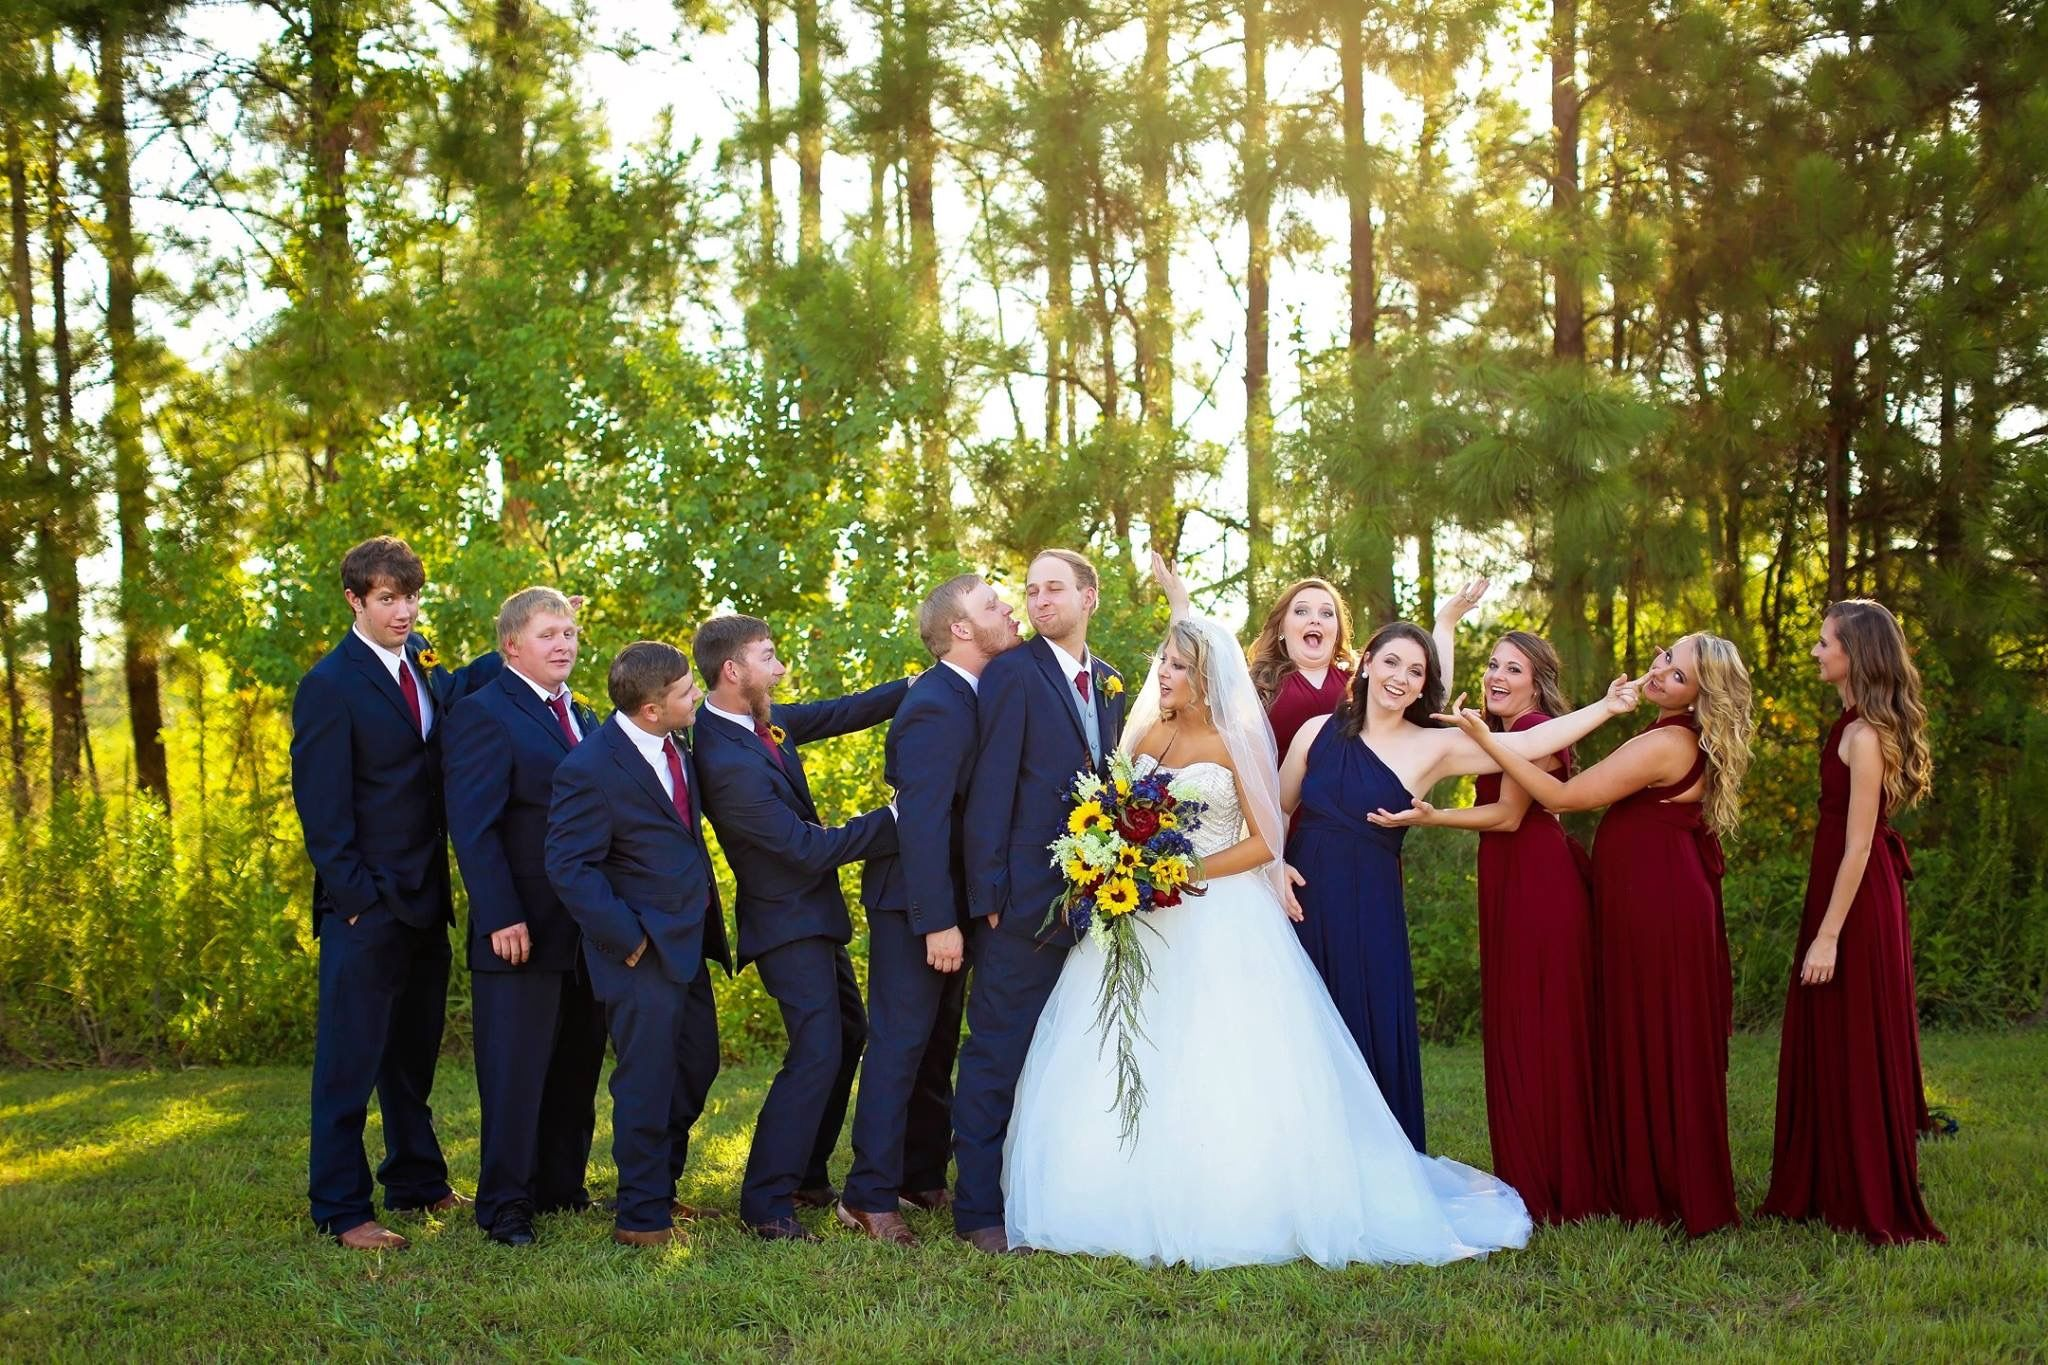 burgundy navy wedding bride sunflowers bridal pary in 2019